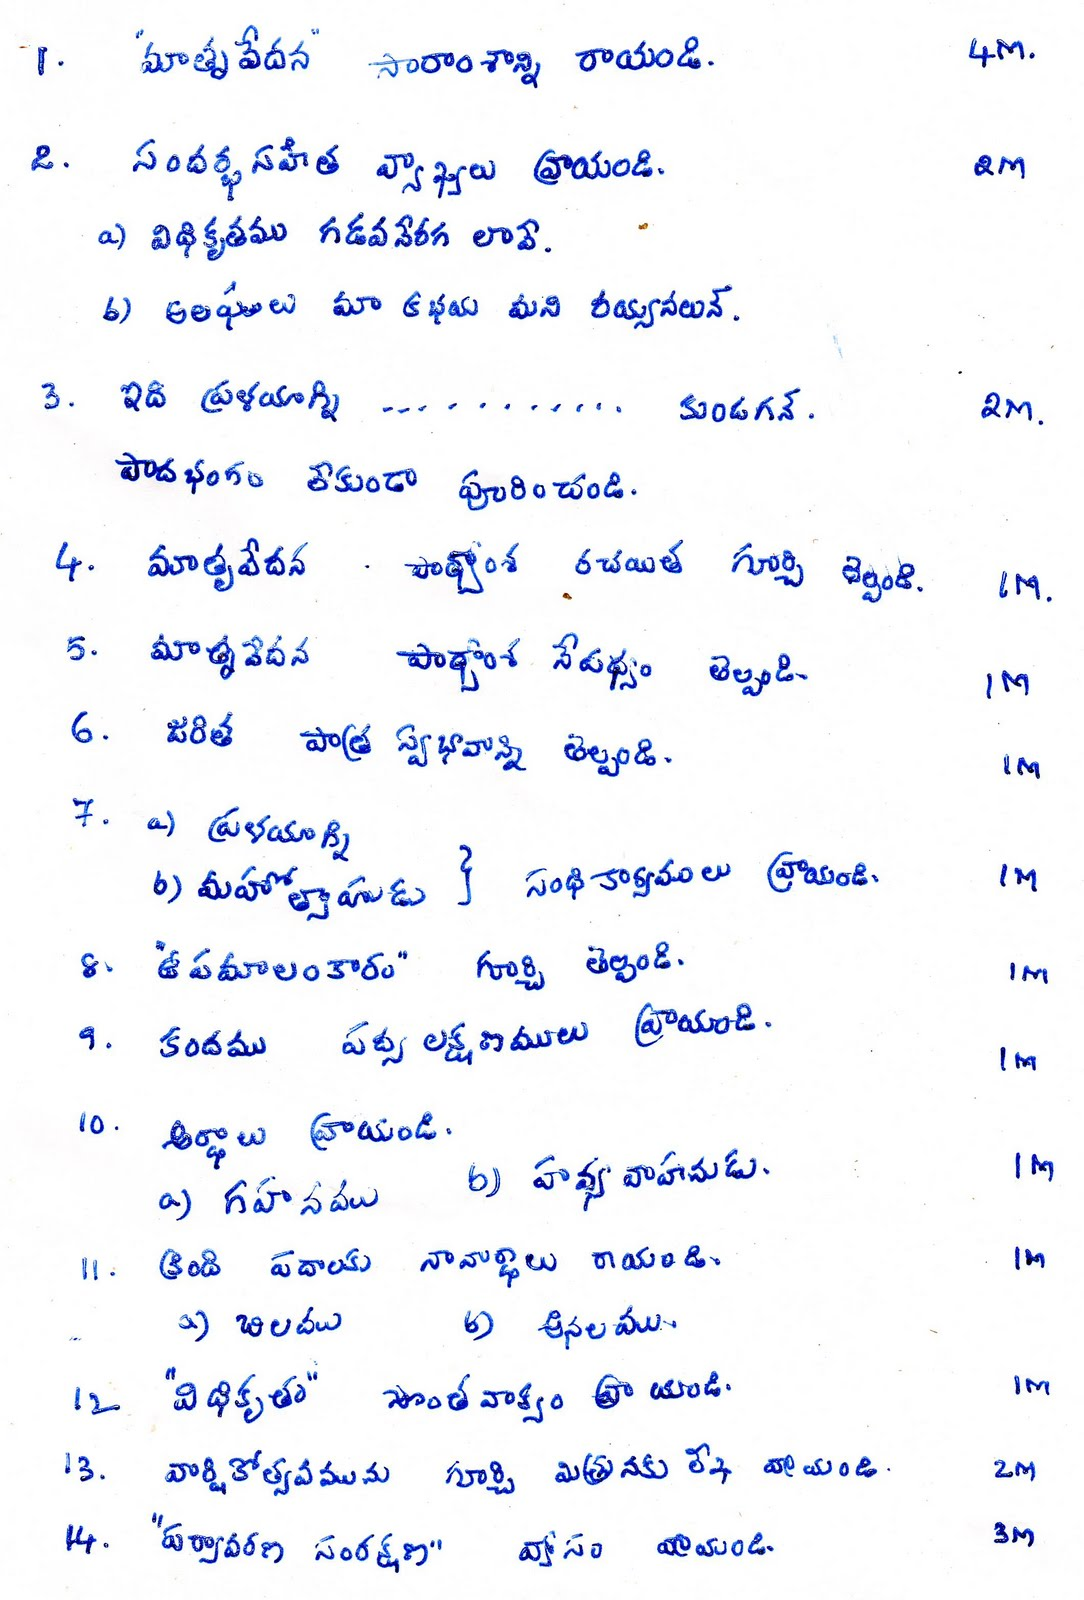 temple essay question 2011